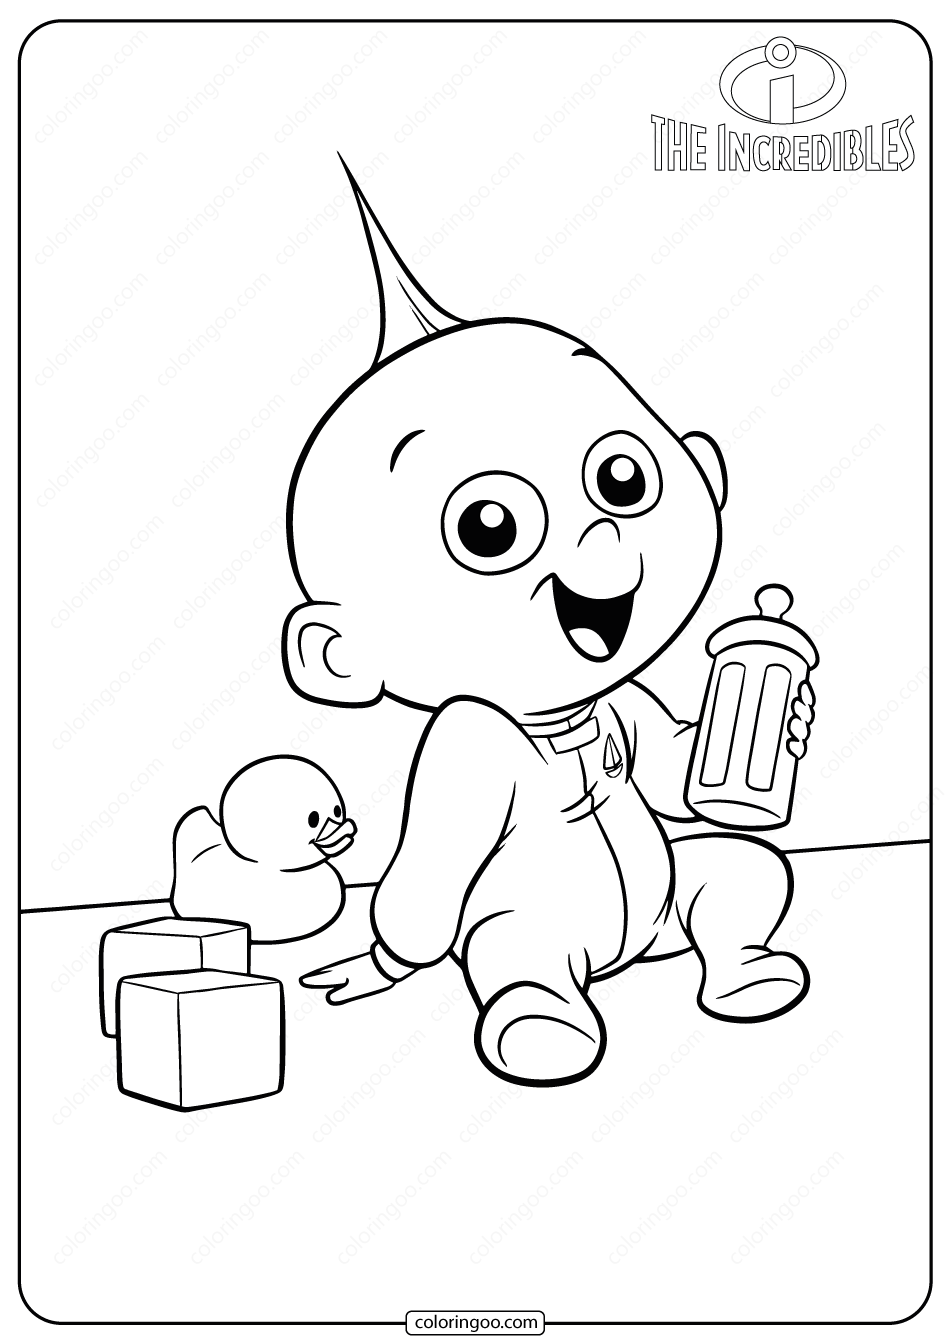 The Incredibles Jack Jack Coloring Pages in 2020 The